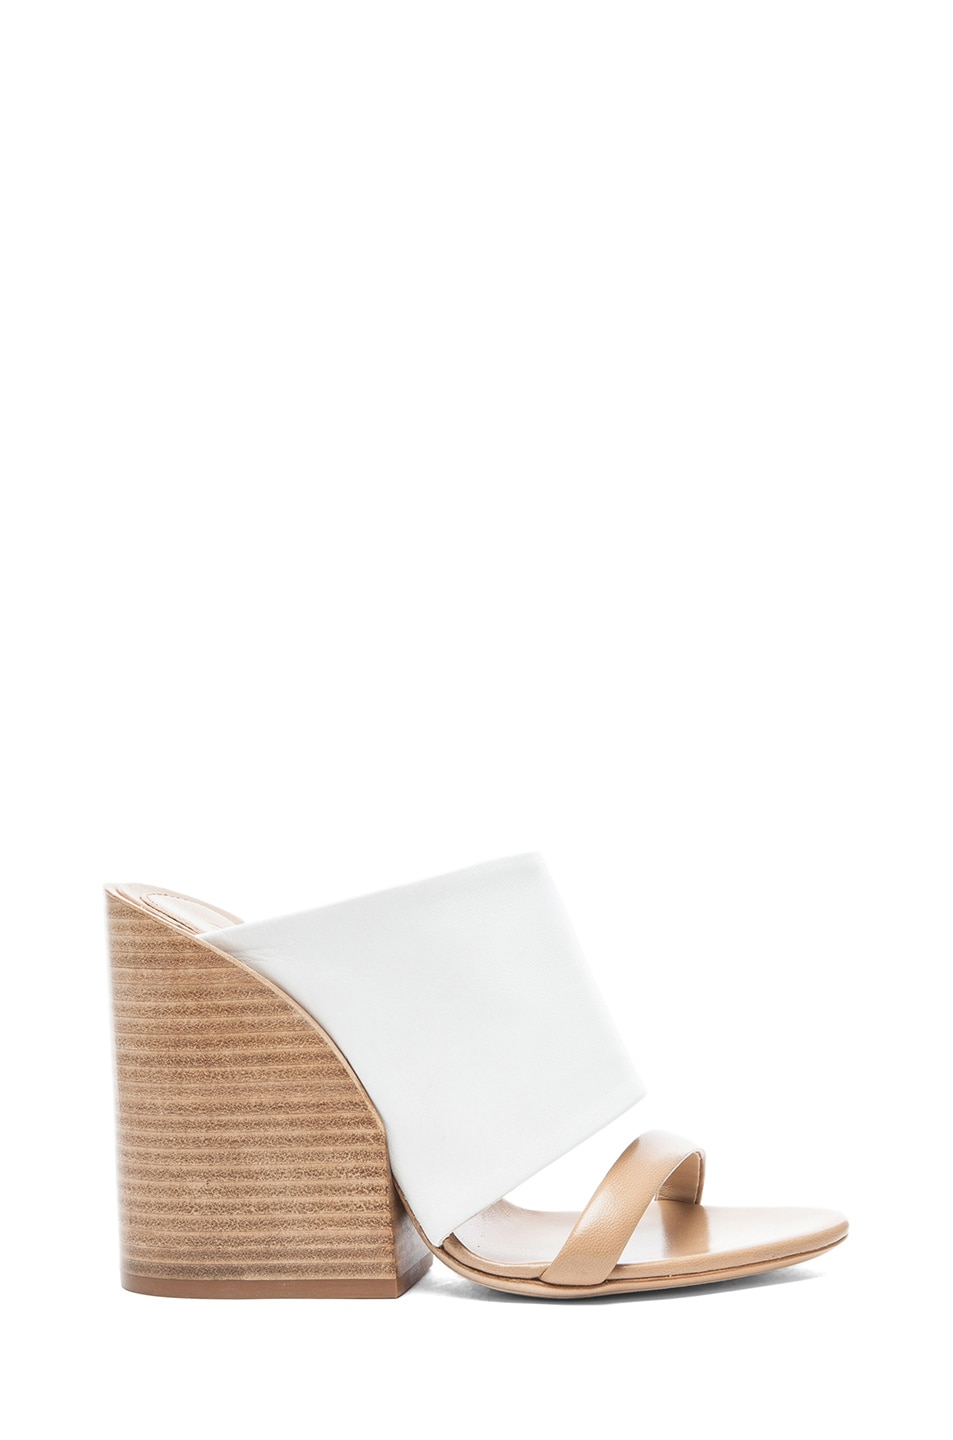 Image 1 of Chloe Mule Nappa Leather Sandals in White & Tan